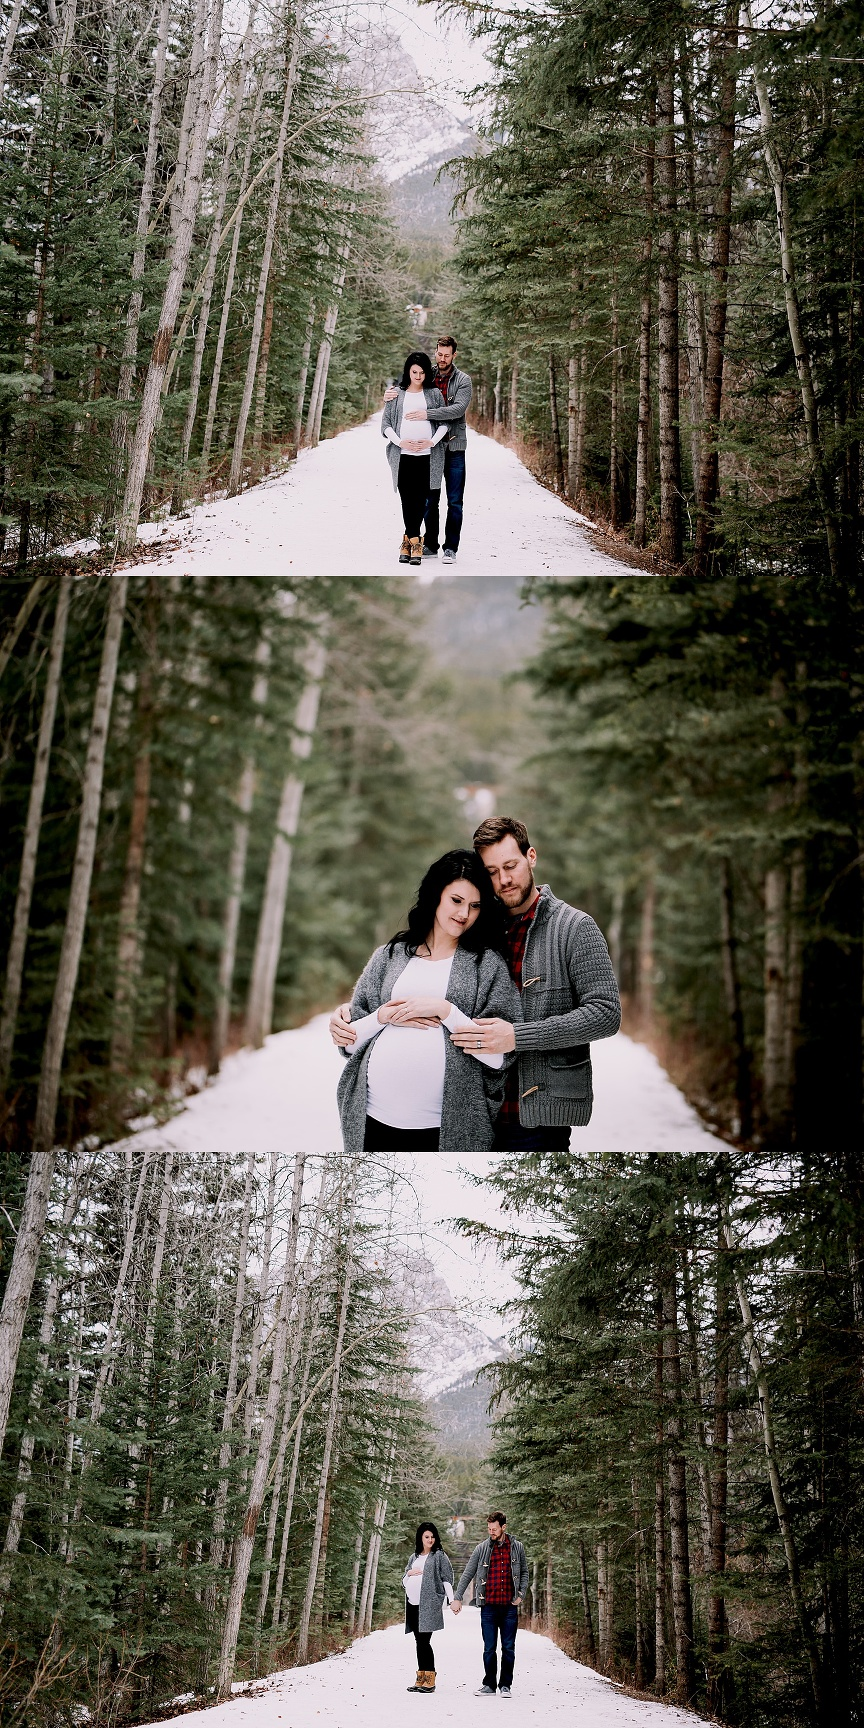 calgary maternity photographer, winter maternity session, canadian rockies photographer